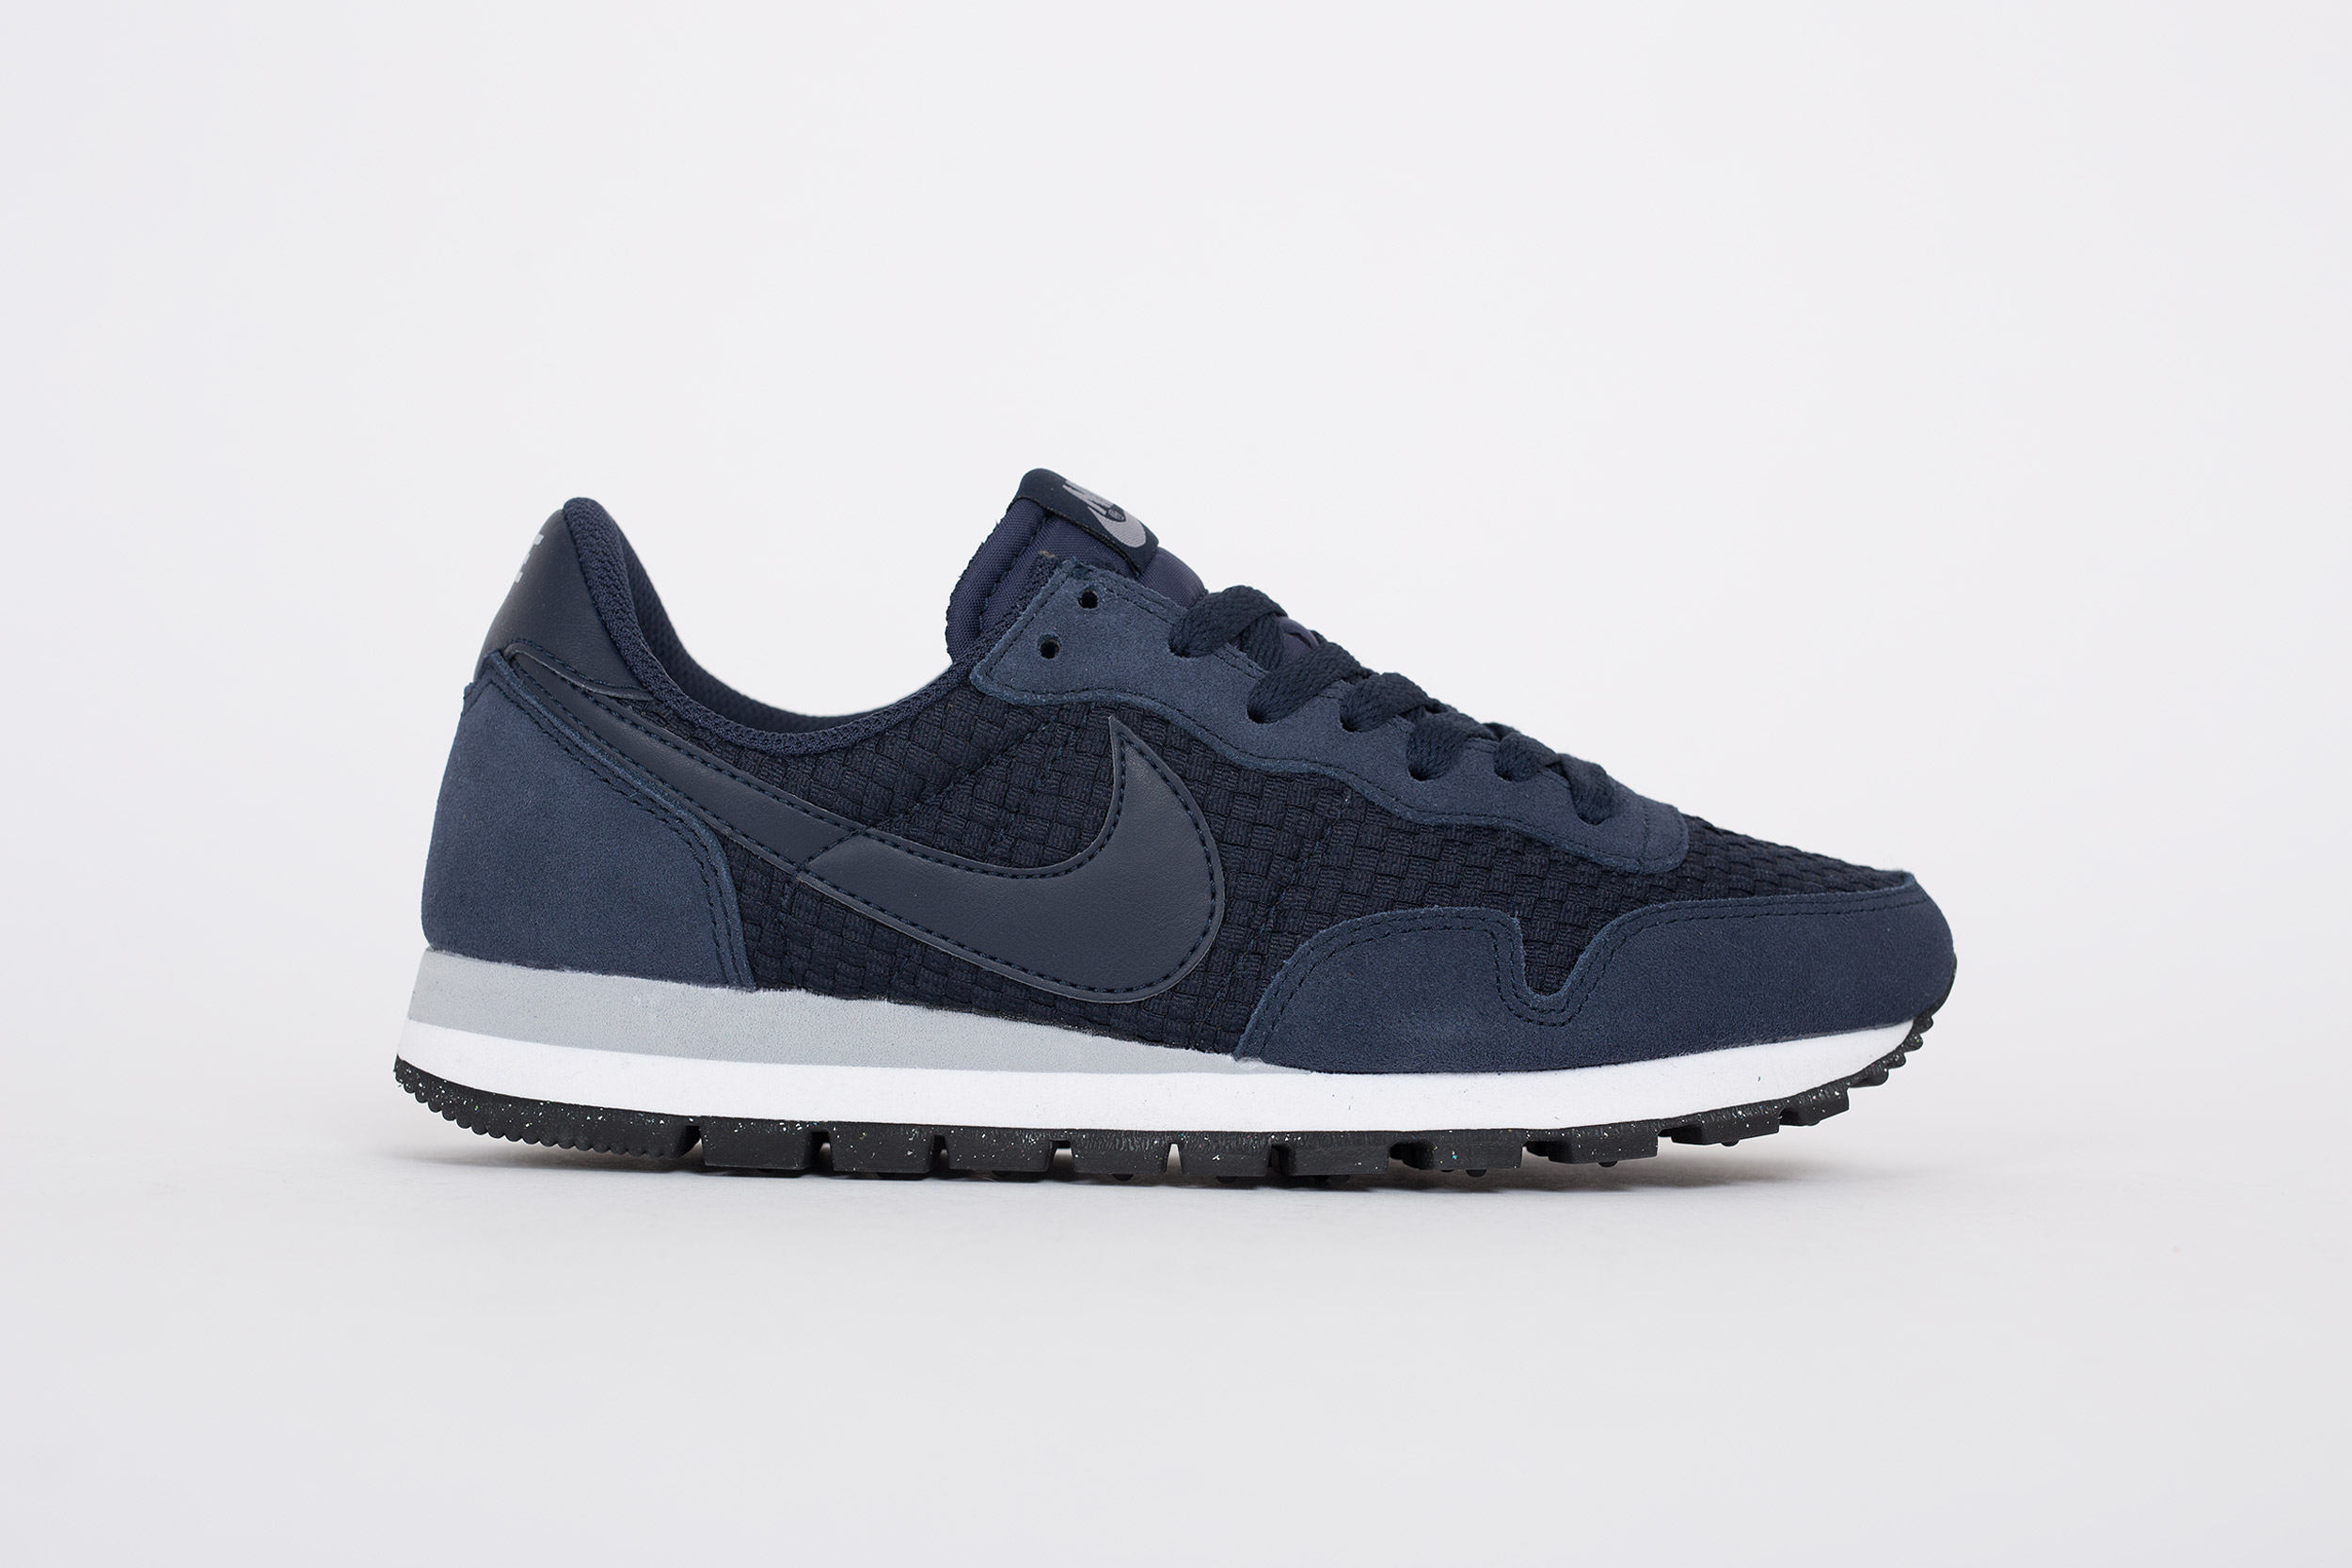 1cd010ebcc52 Nike Air Pegasus  83. Color  Obsidian Obsidian-Wolf Grey-White Style   725220-400. Nike Air Pegasus 83 30 Team Red Atomic Red Men s Running Shoes  599482-616